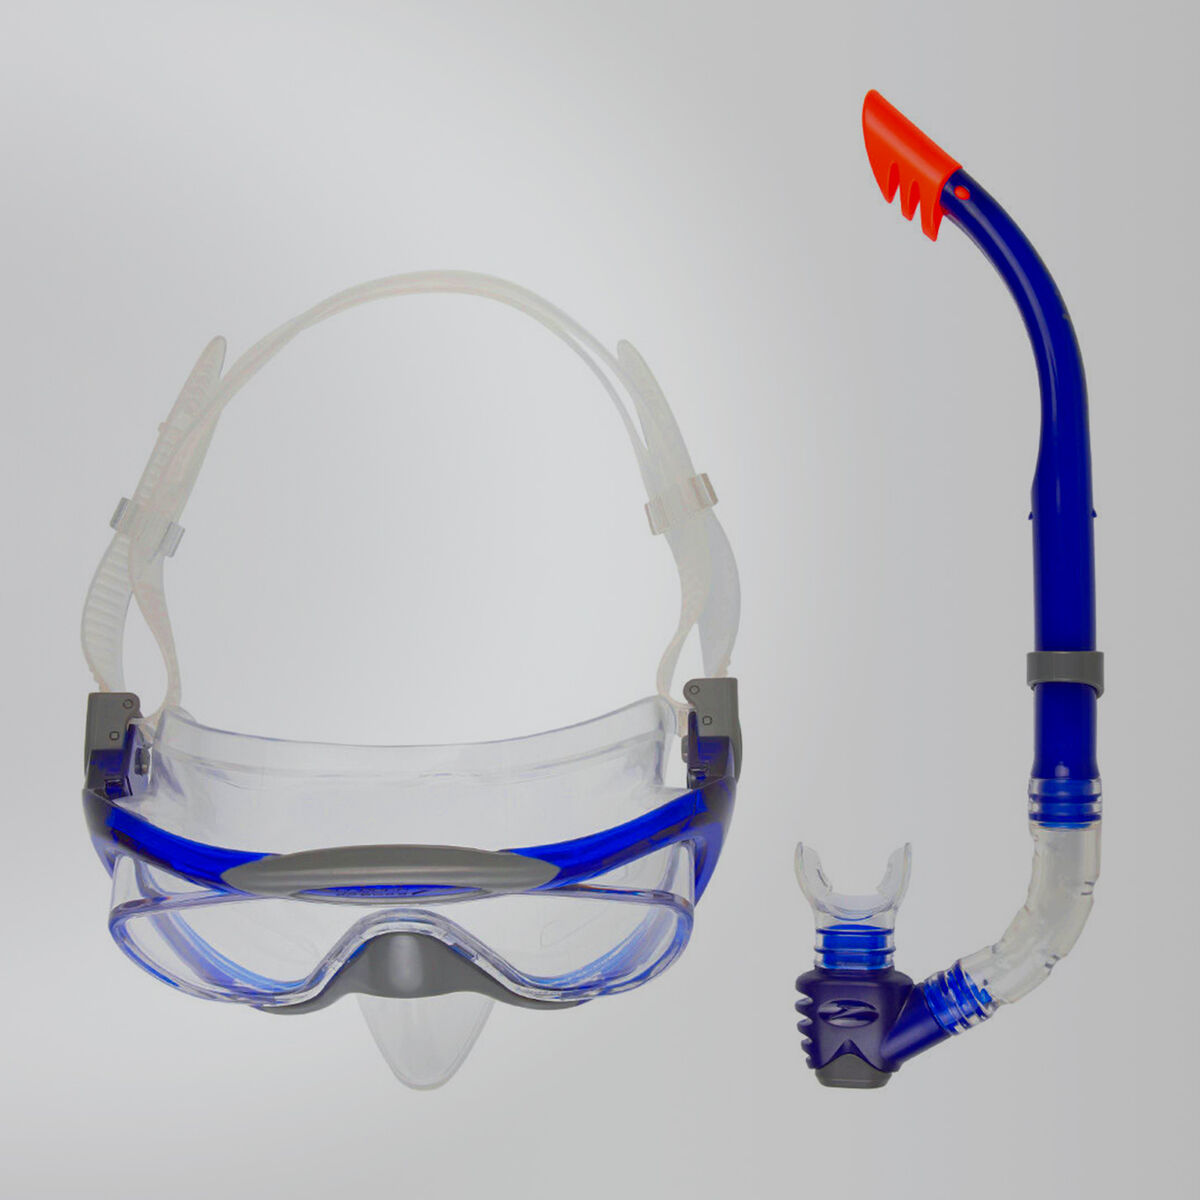 Speedo Glide Mask a Snorkel set